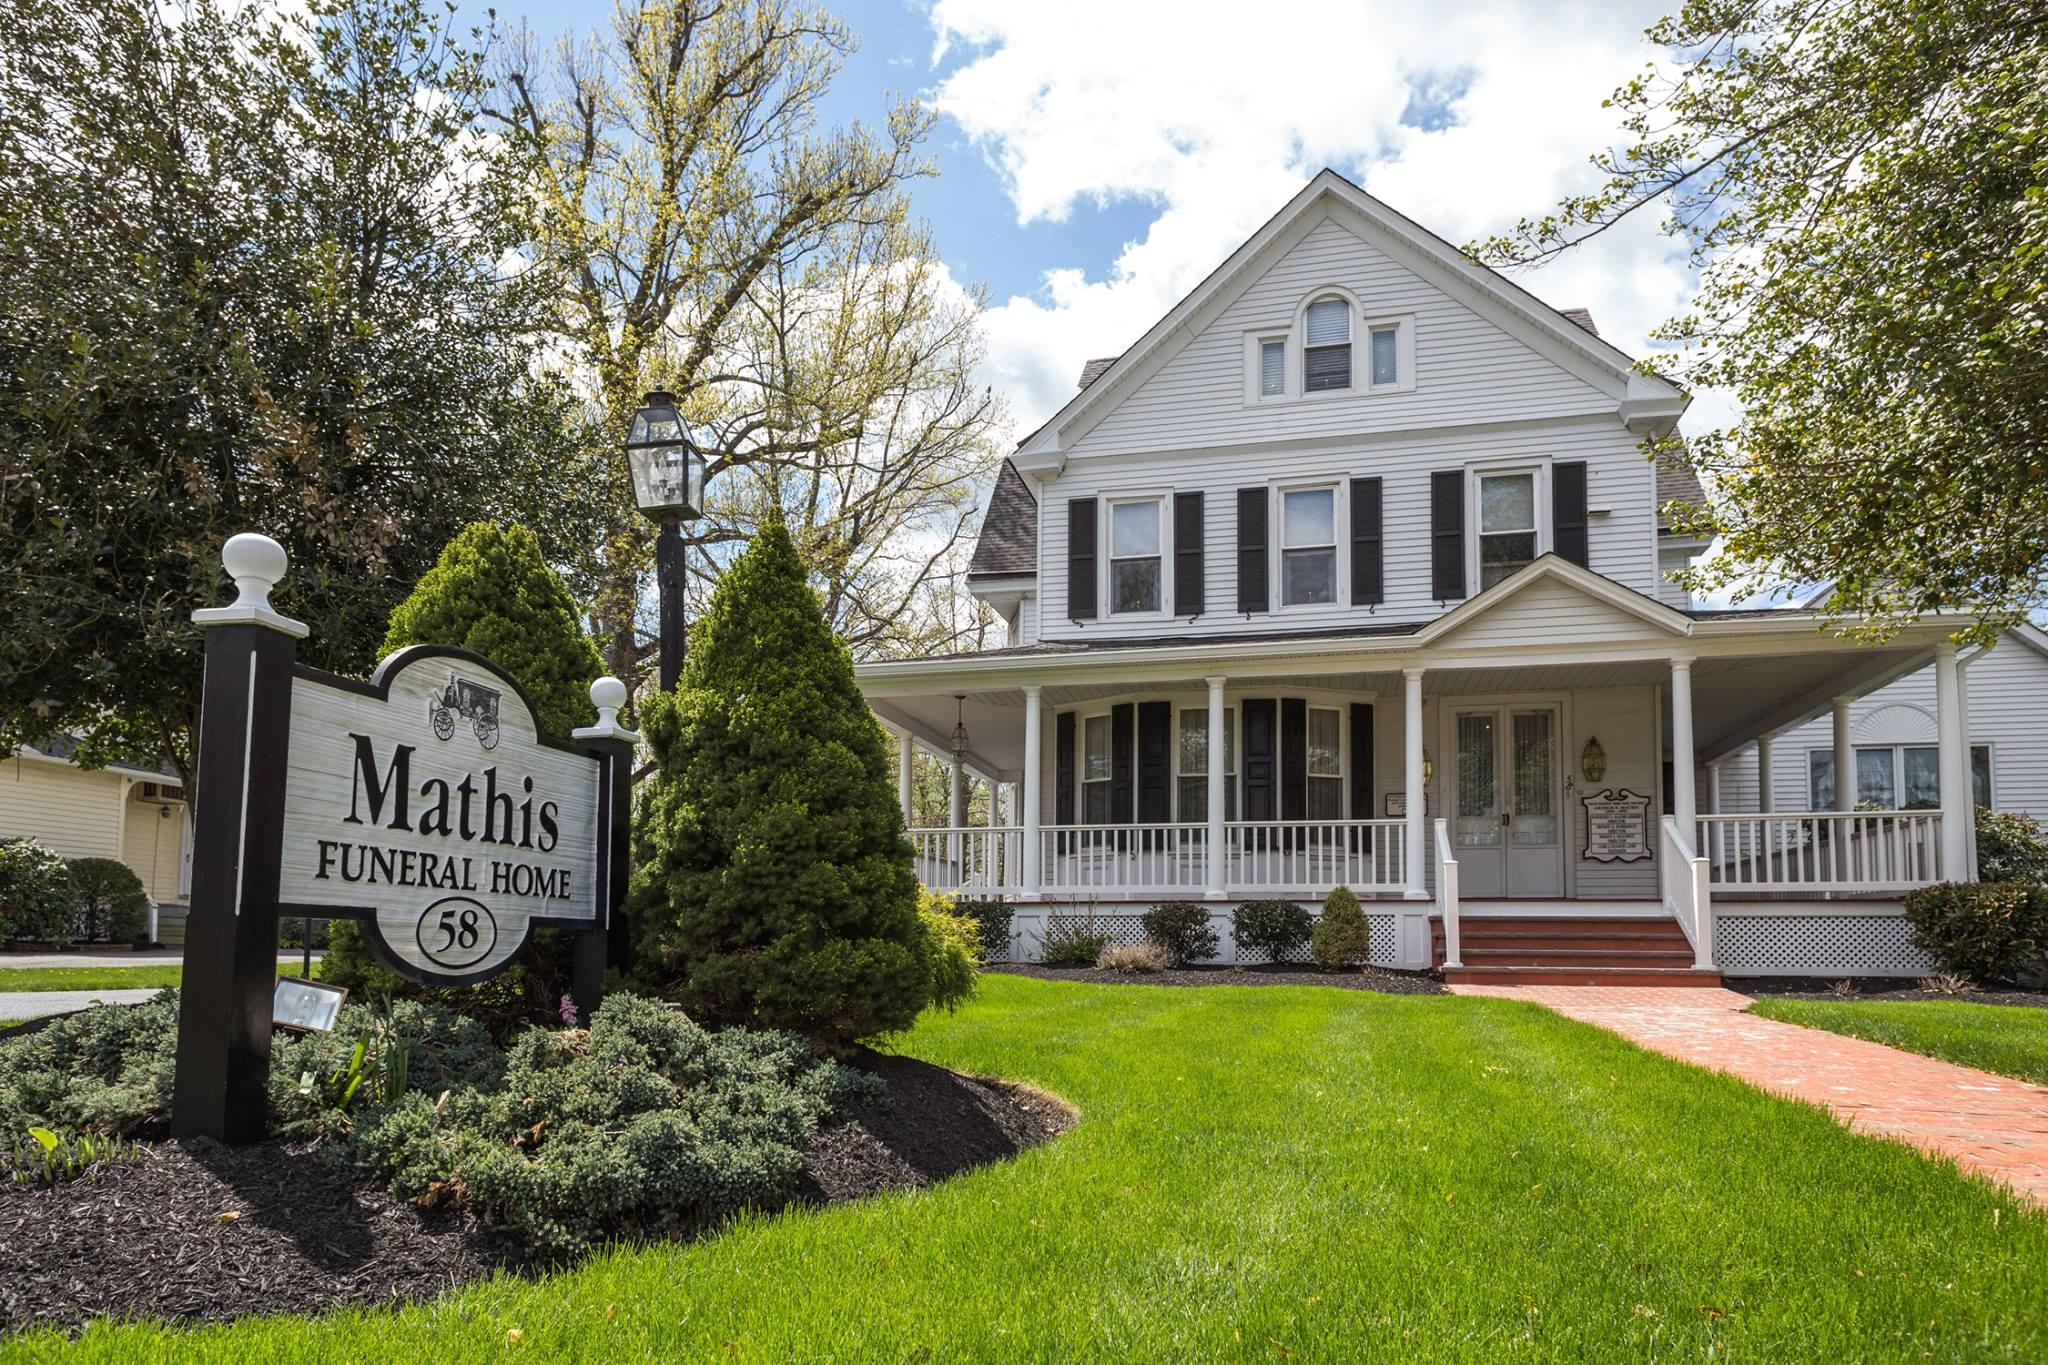 Mathis Funeral Home image 1